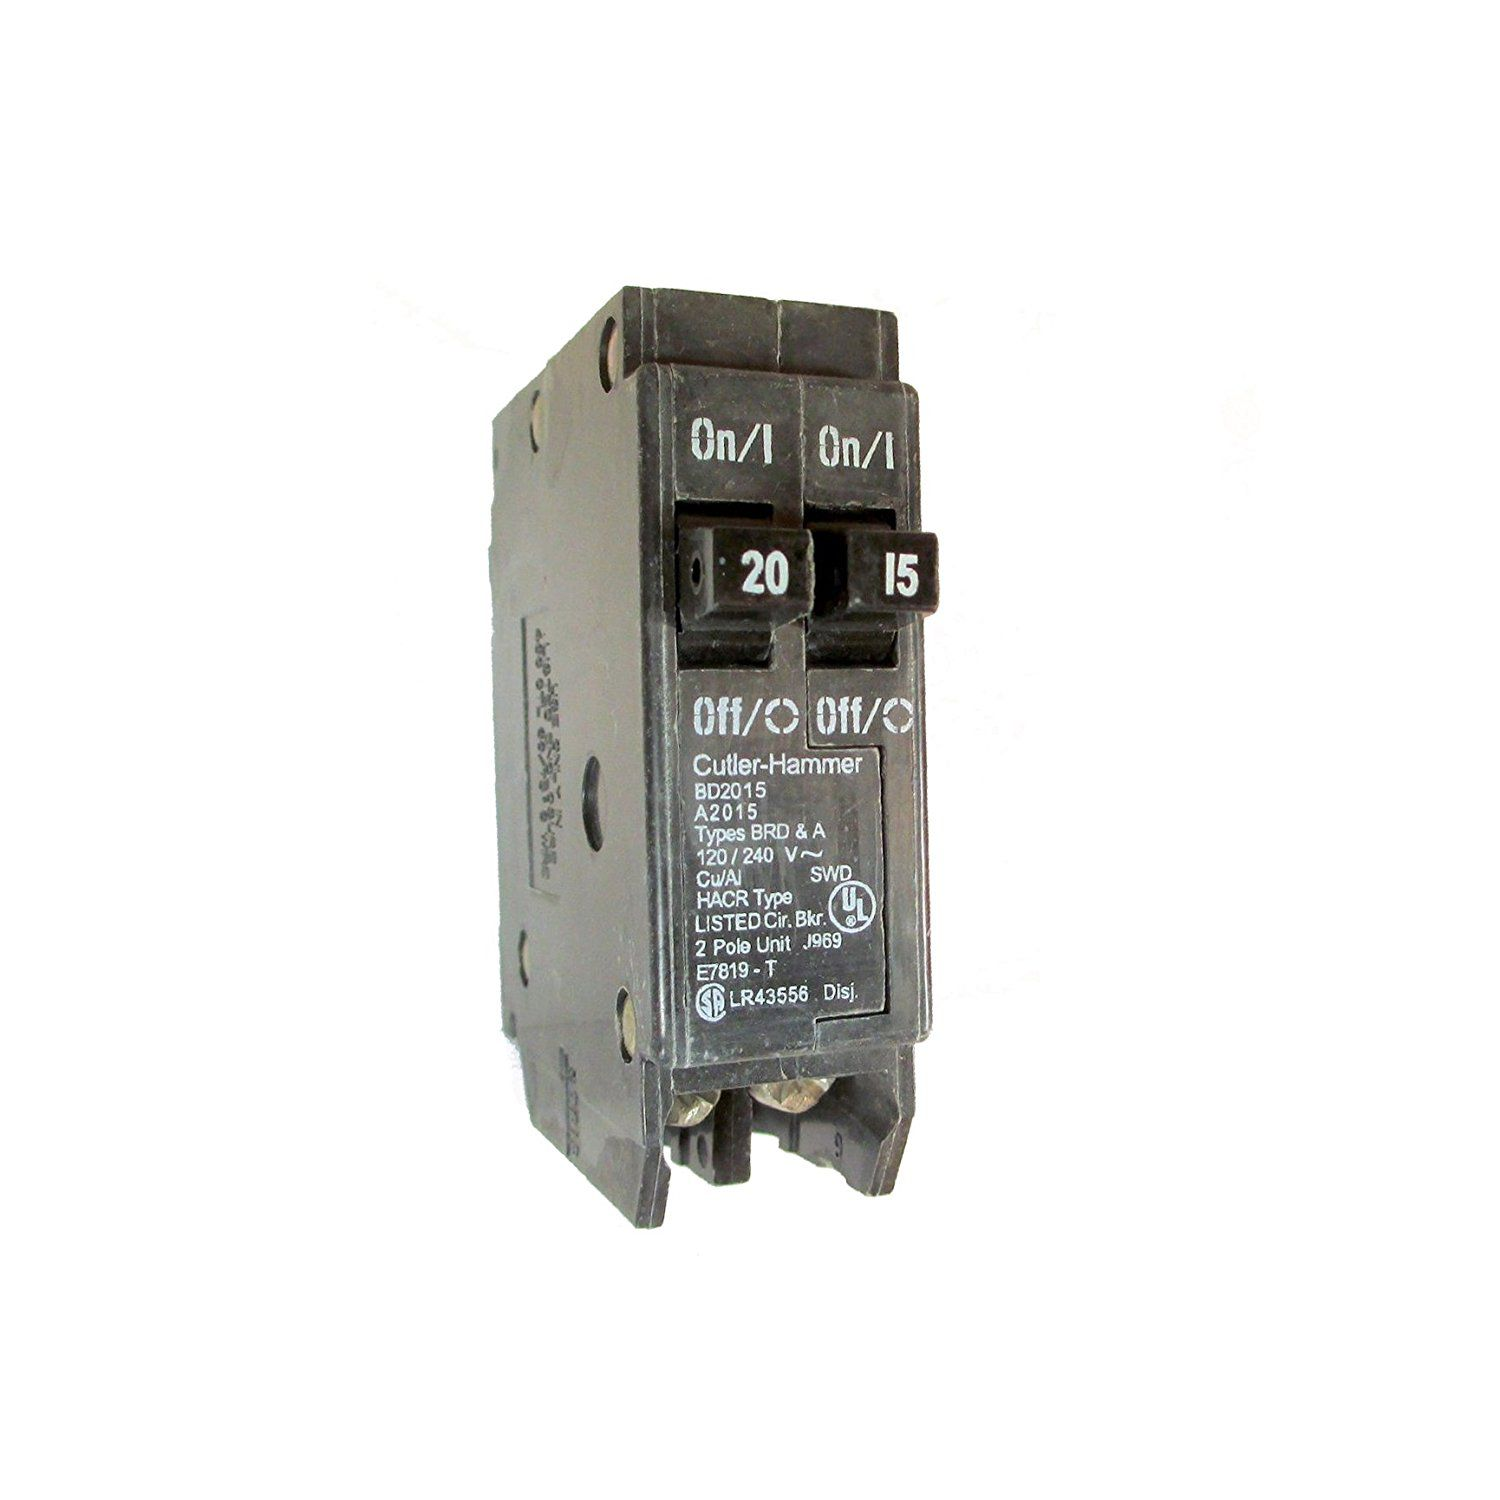 Cooker Tripping Fuse Box : Tandem breakers specialty circuit